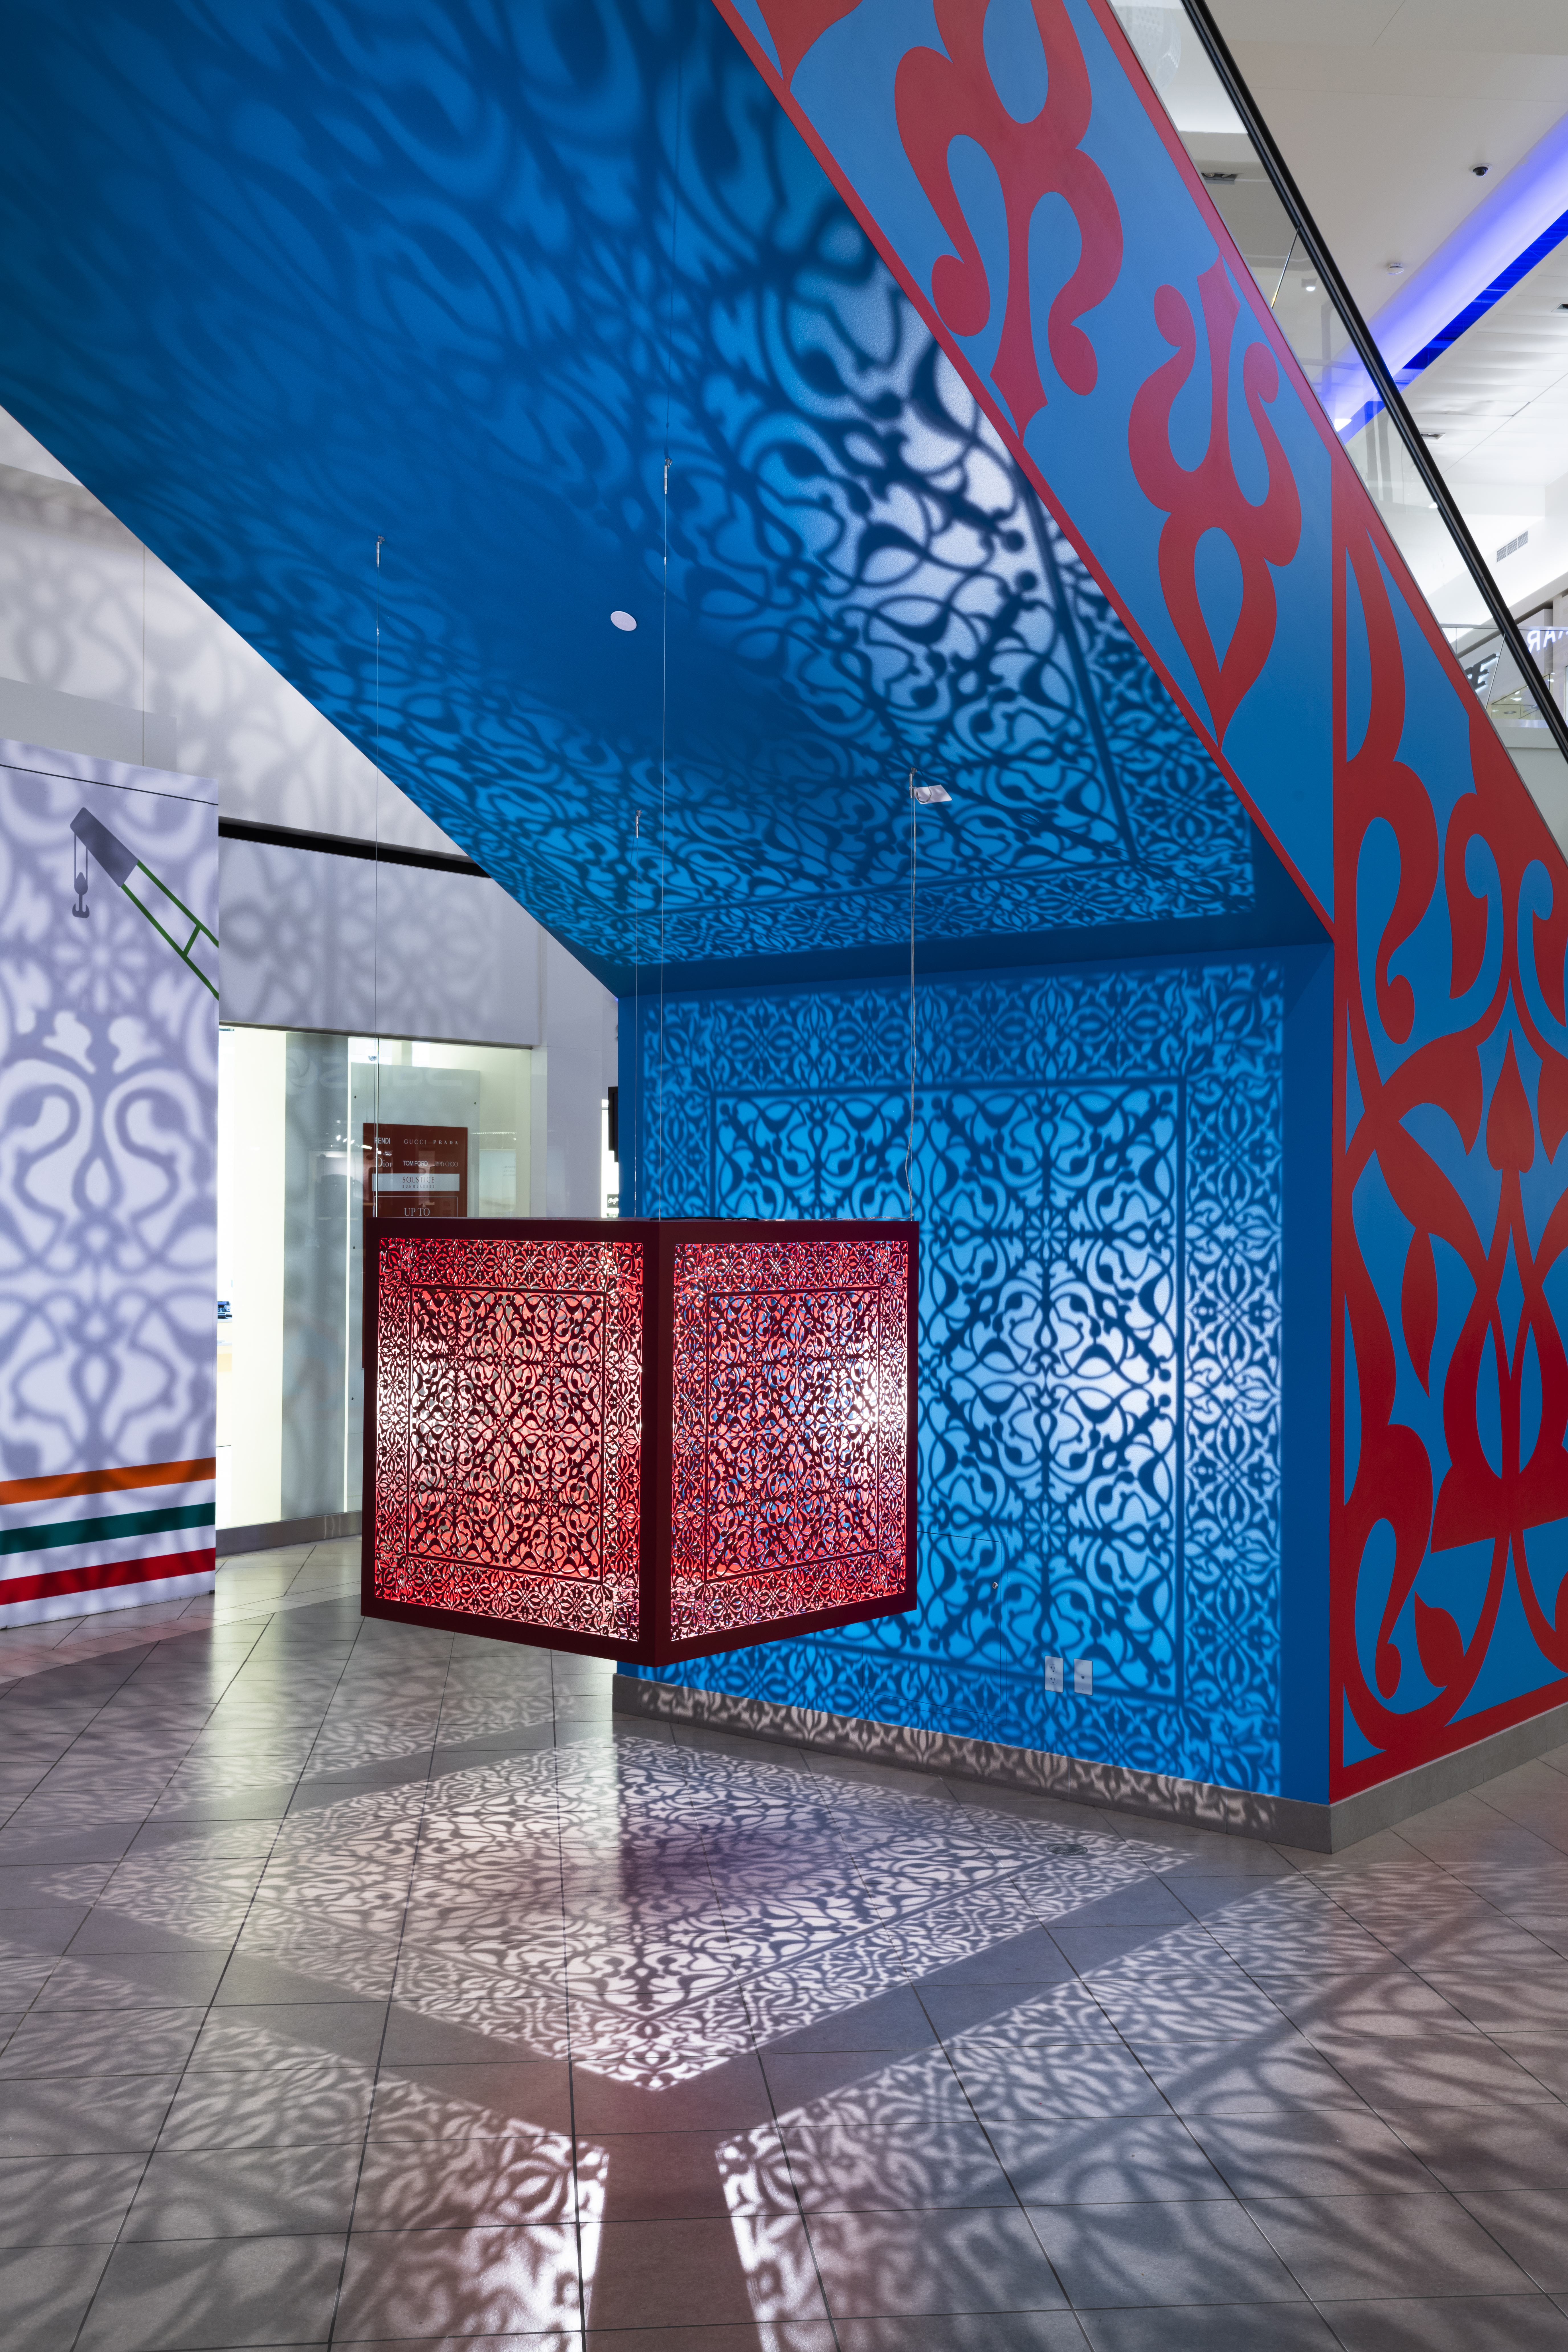 Anila Quayyum Agha - Shimmering Mirage (Red), Descent into Light, 2020